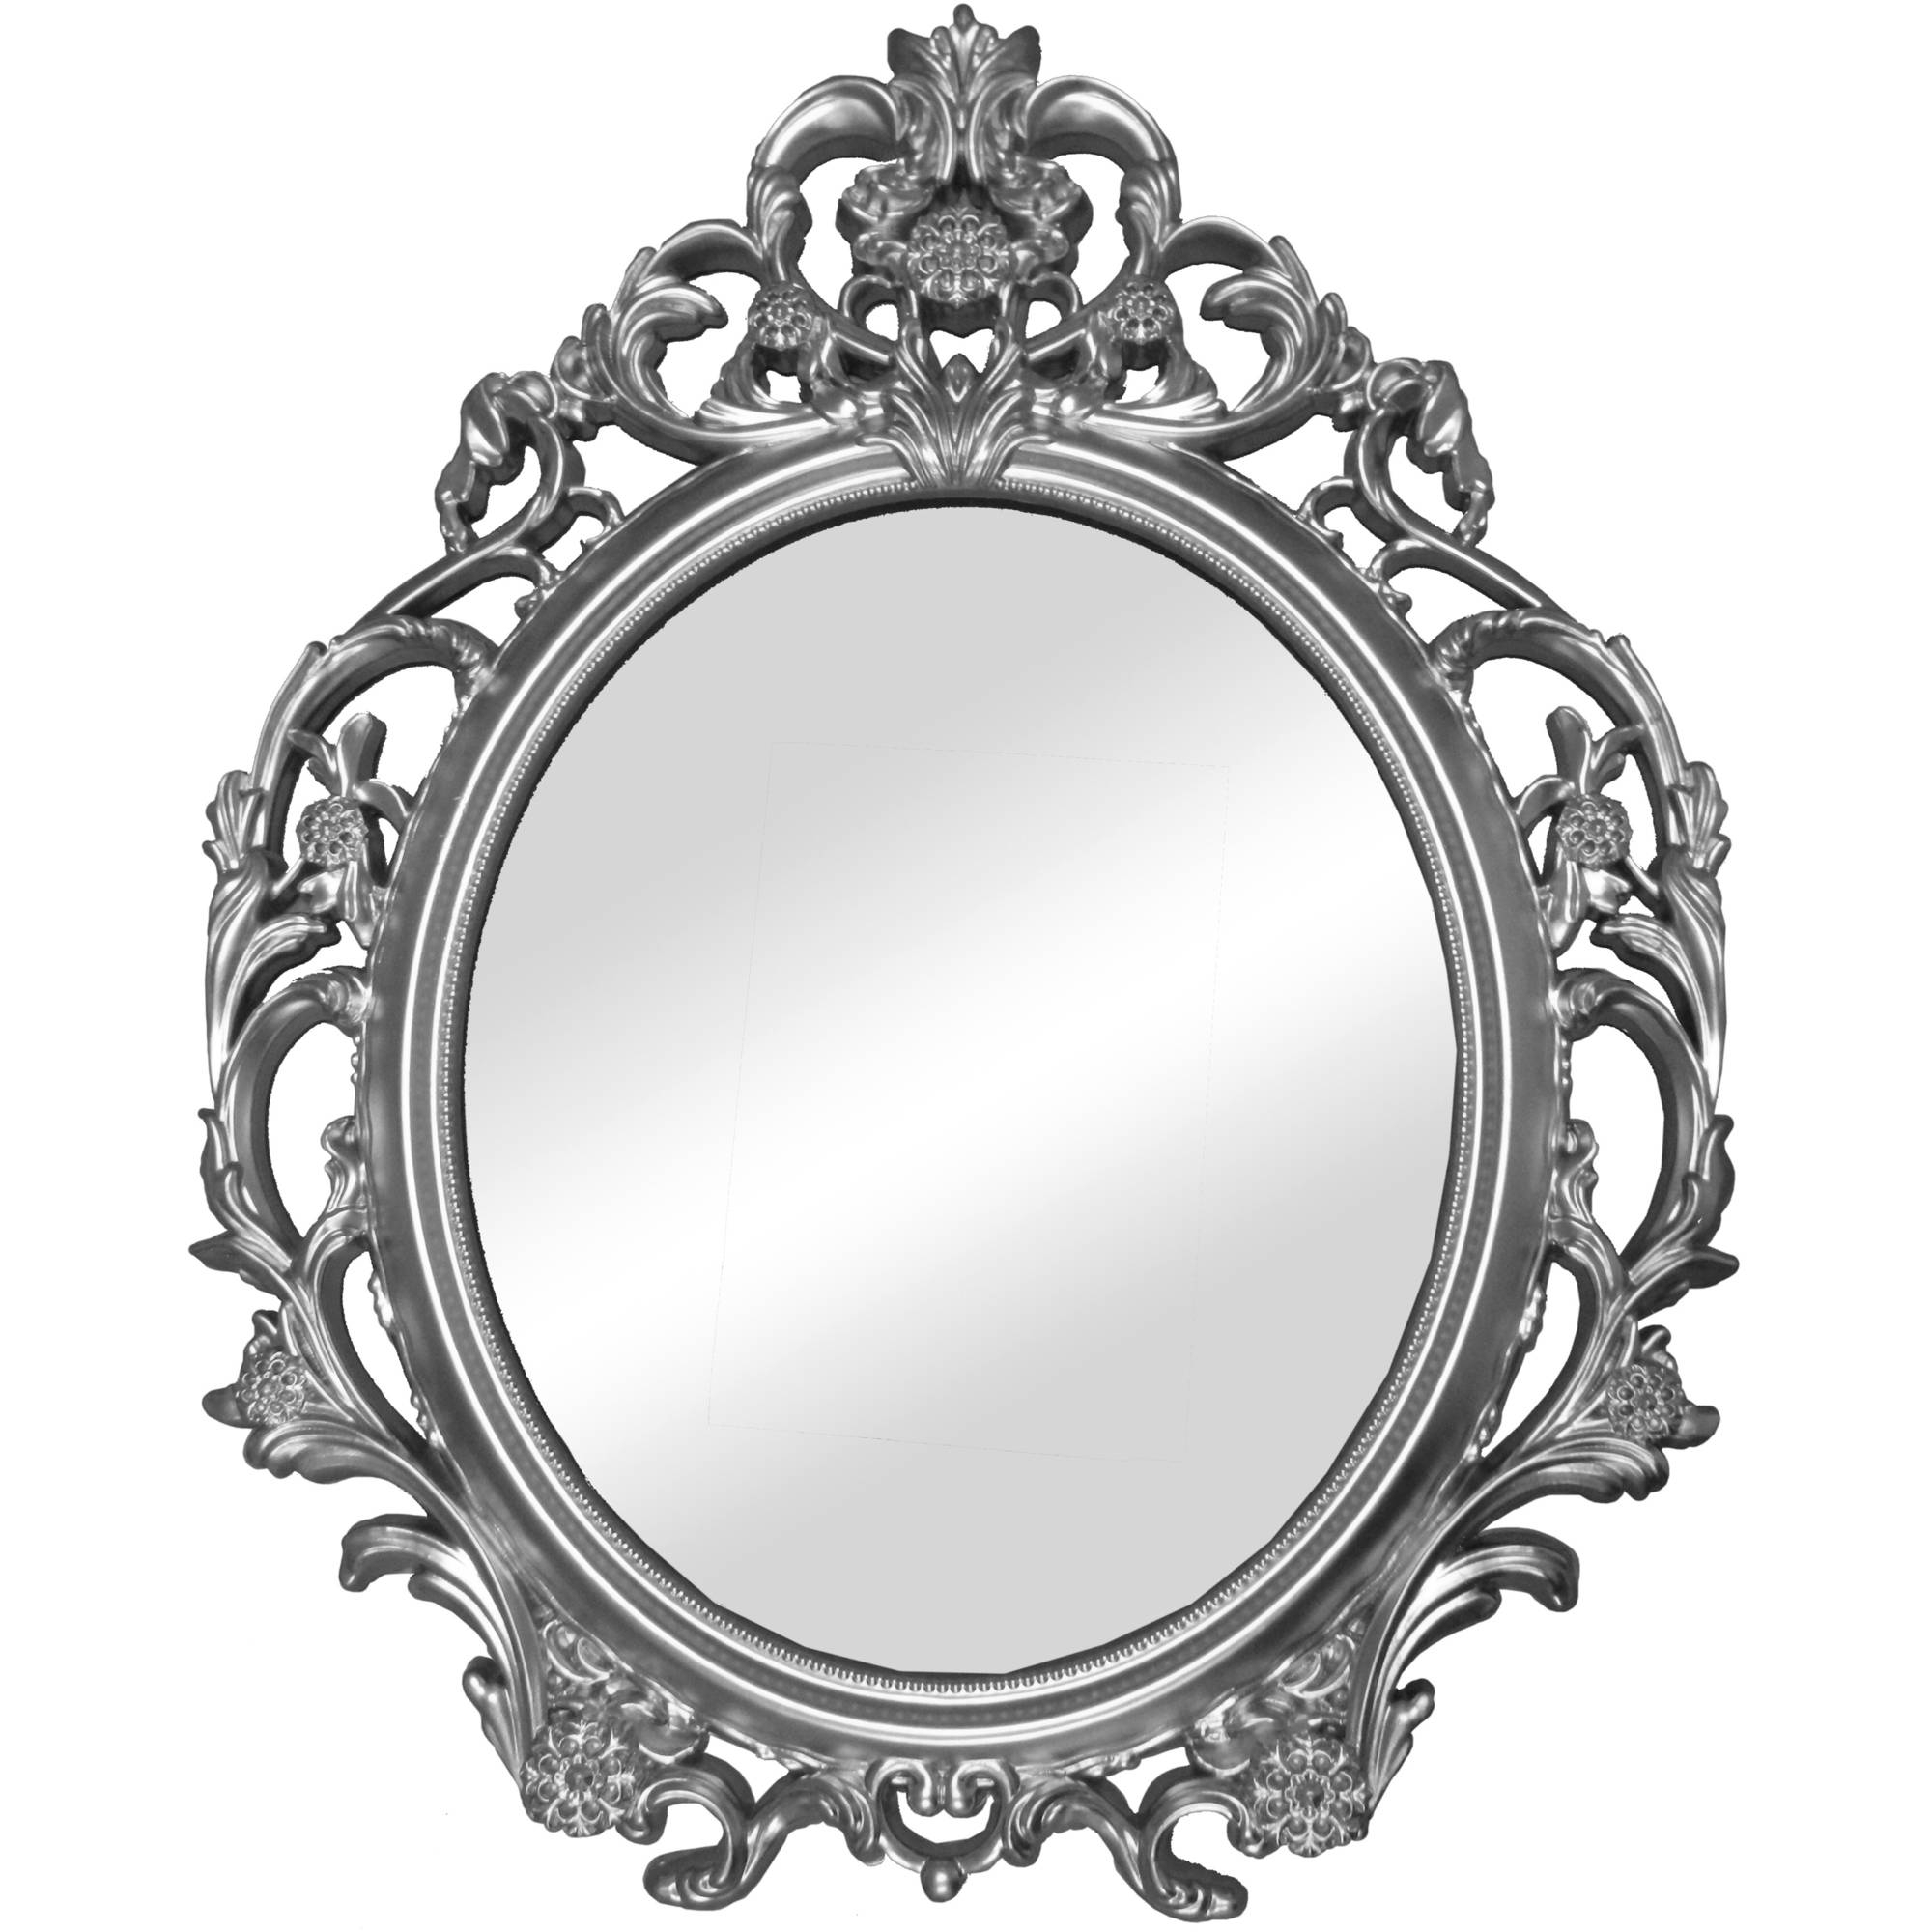 Better Homes & Gardens Ornate Baroque Wall Mirror With Regard To Oval Metallic Accent Mirrors (Image 3 of 20)